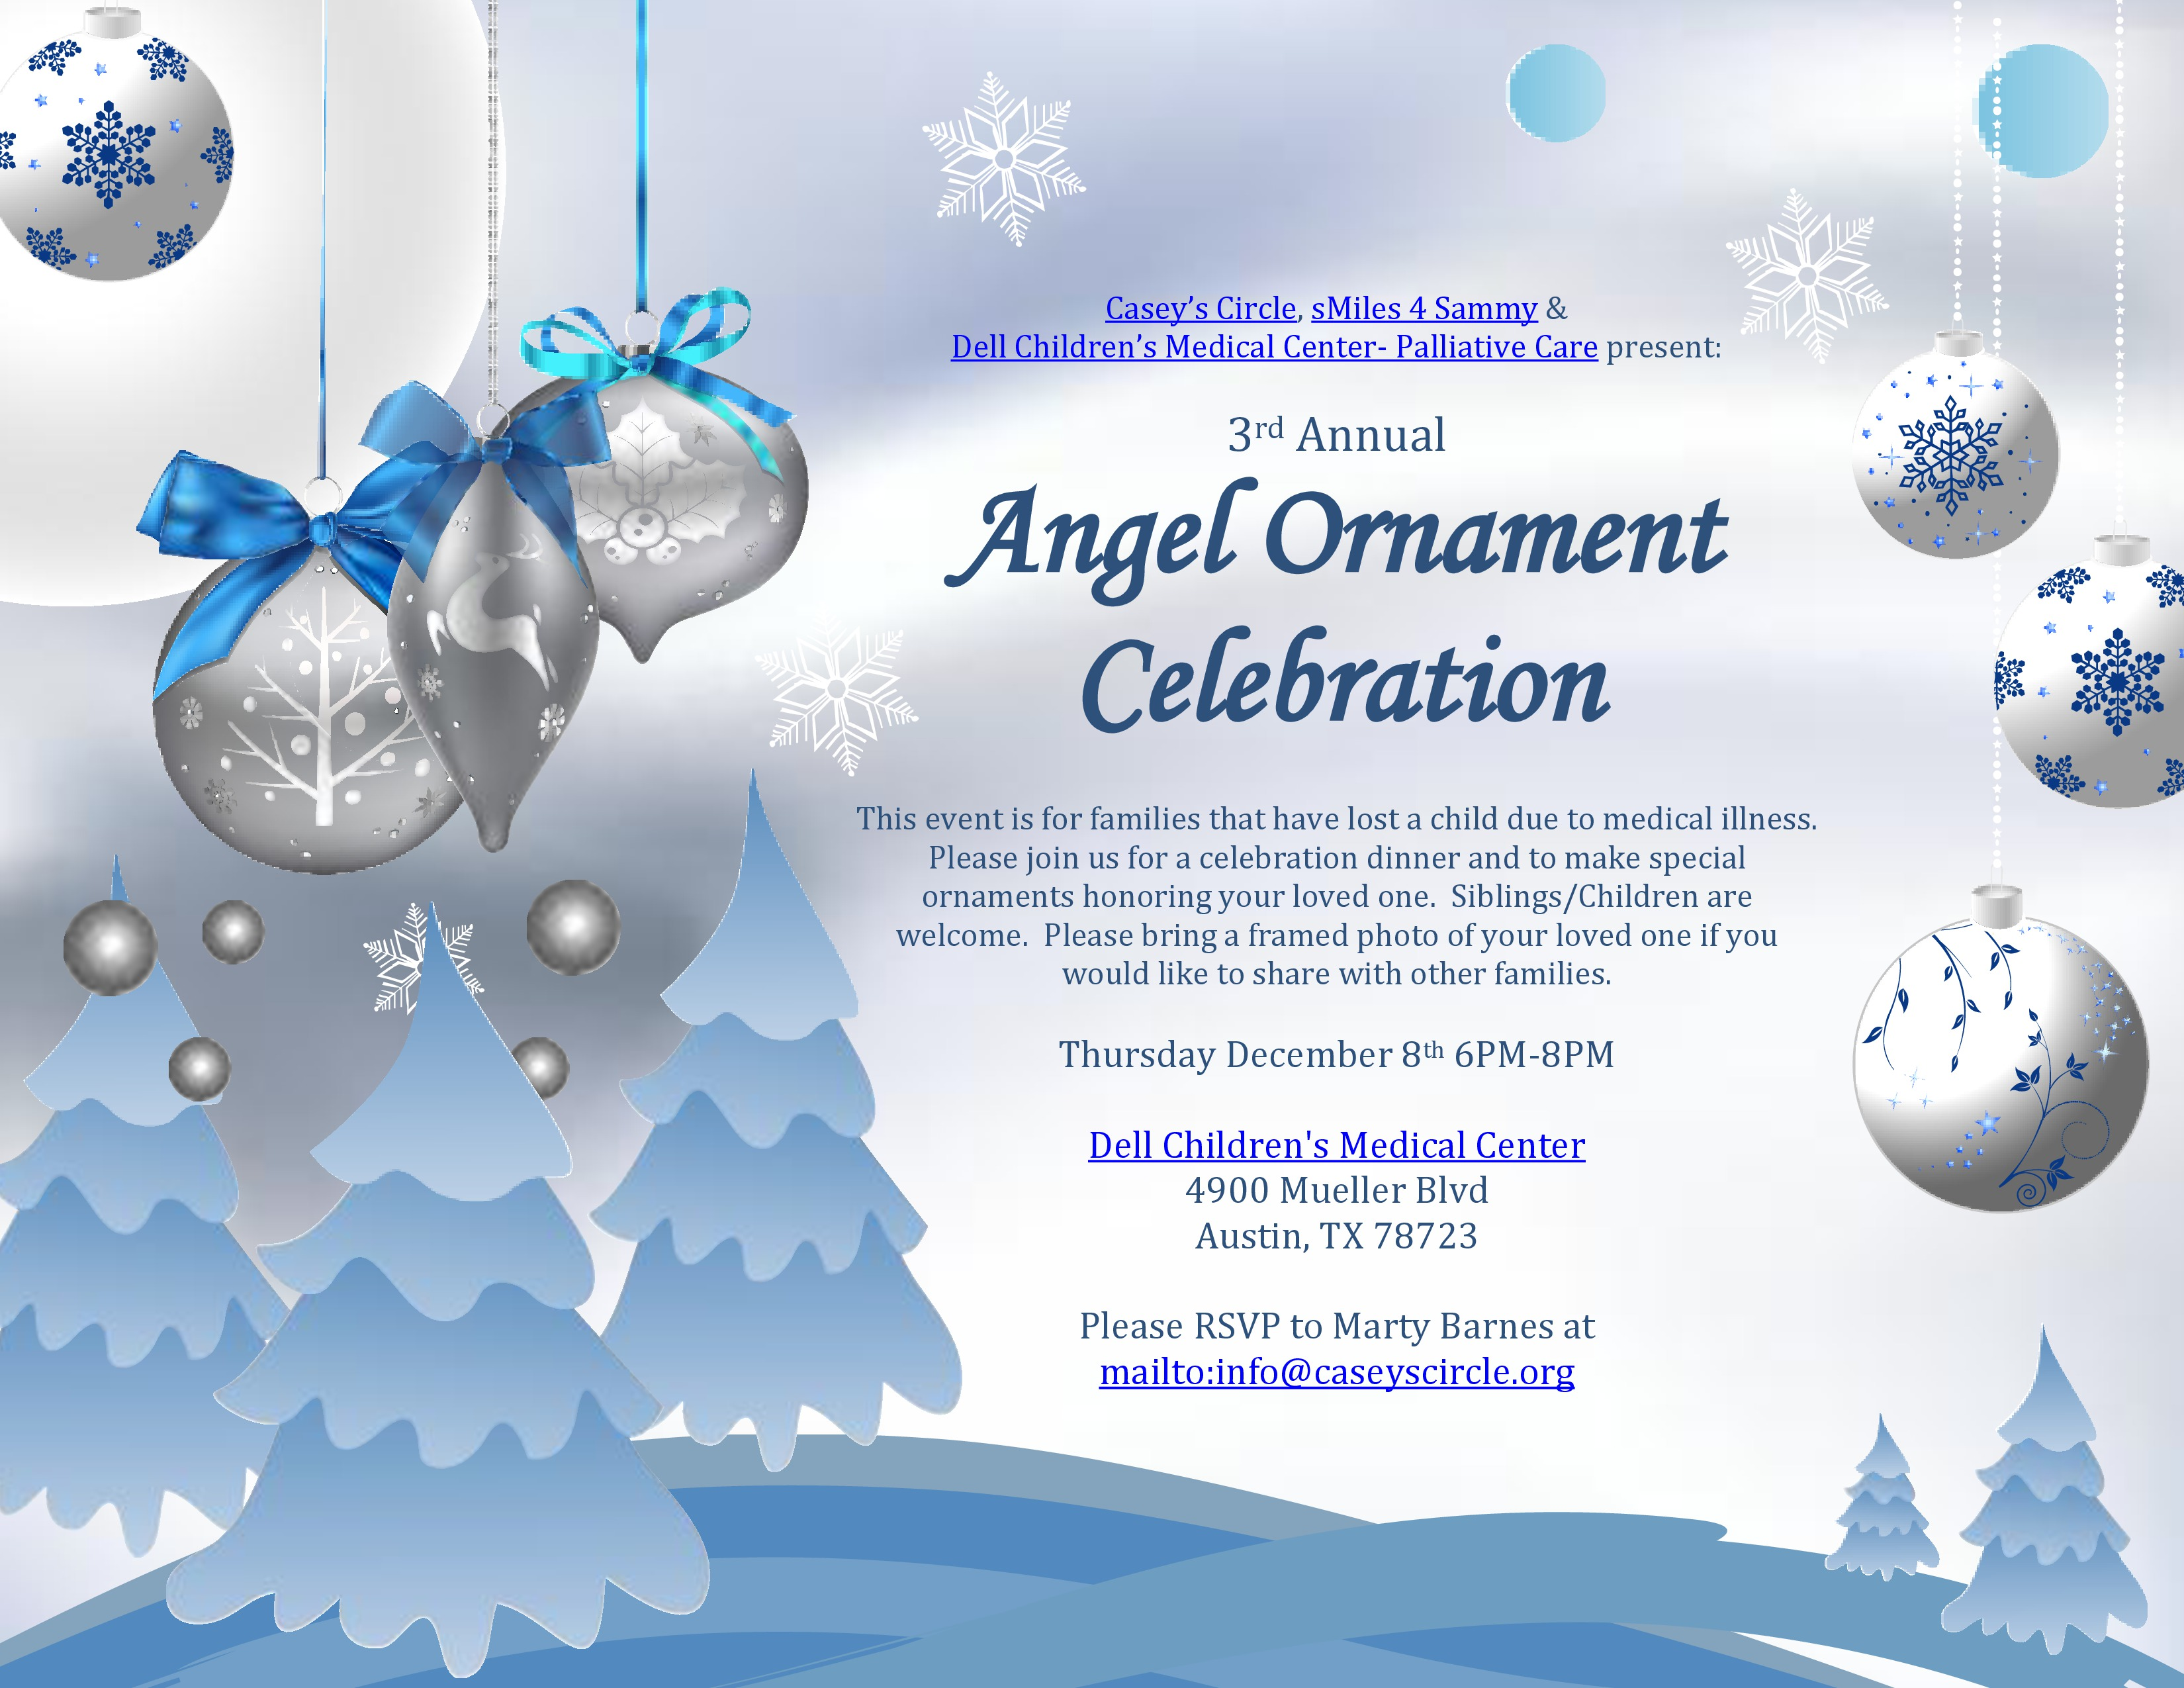 Ornaments for loved ones lost - Ornaments For Loved Ones Lost 36